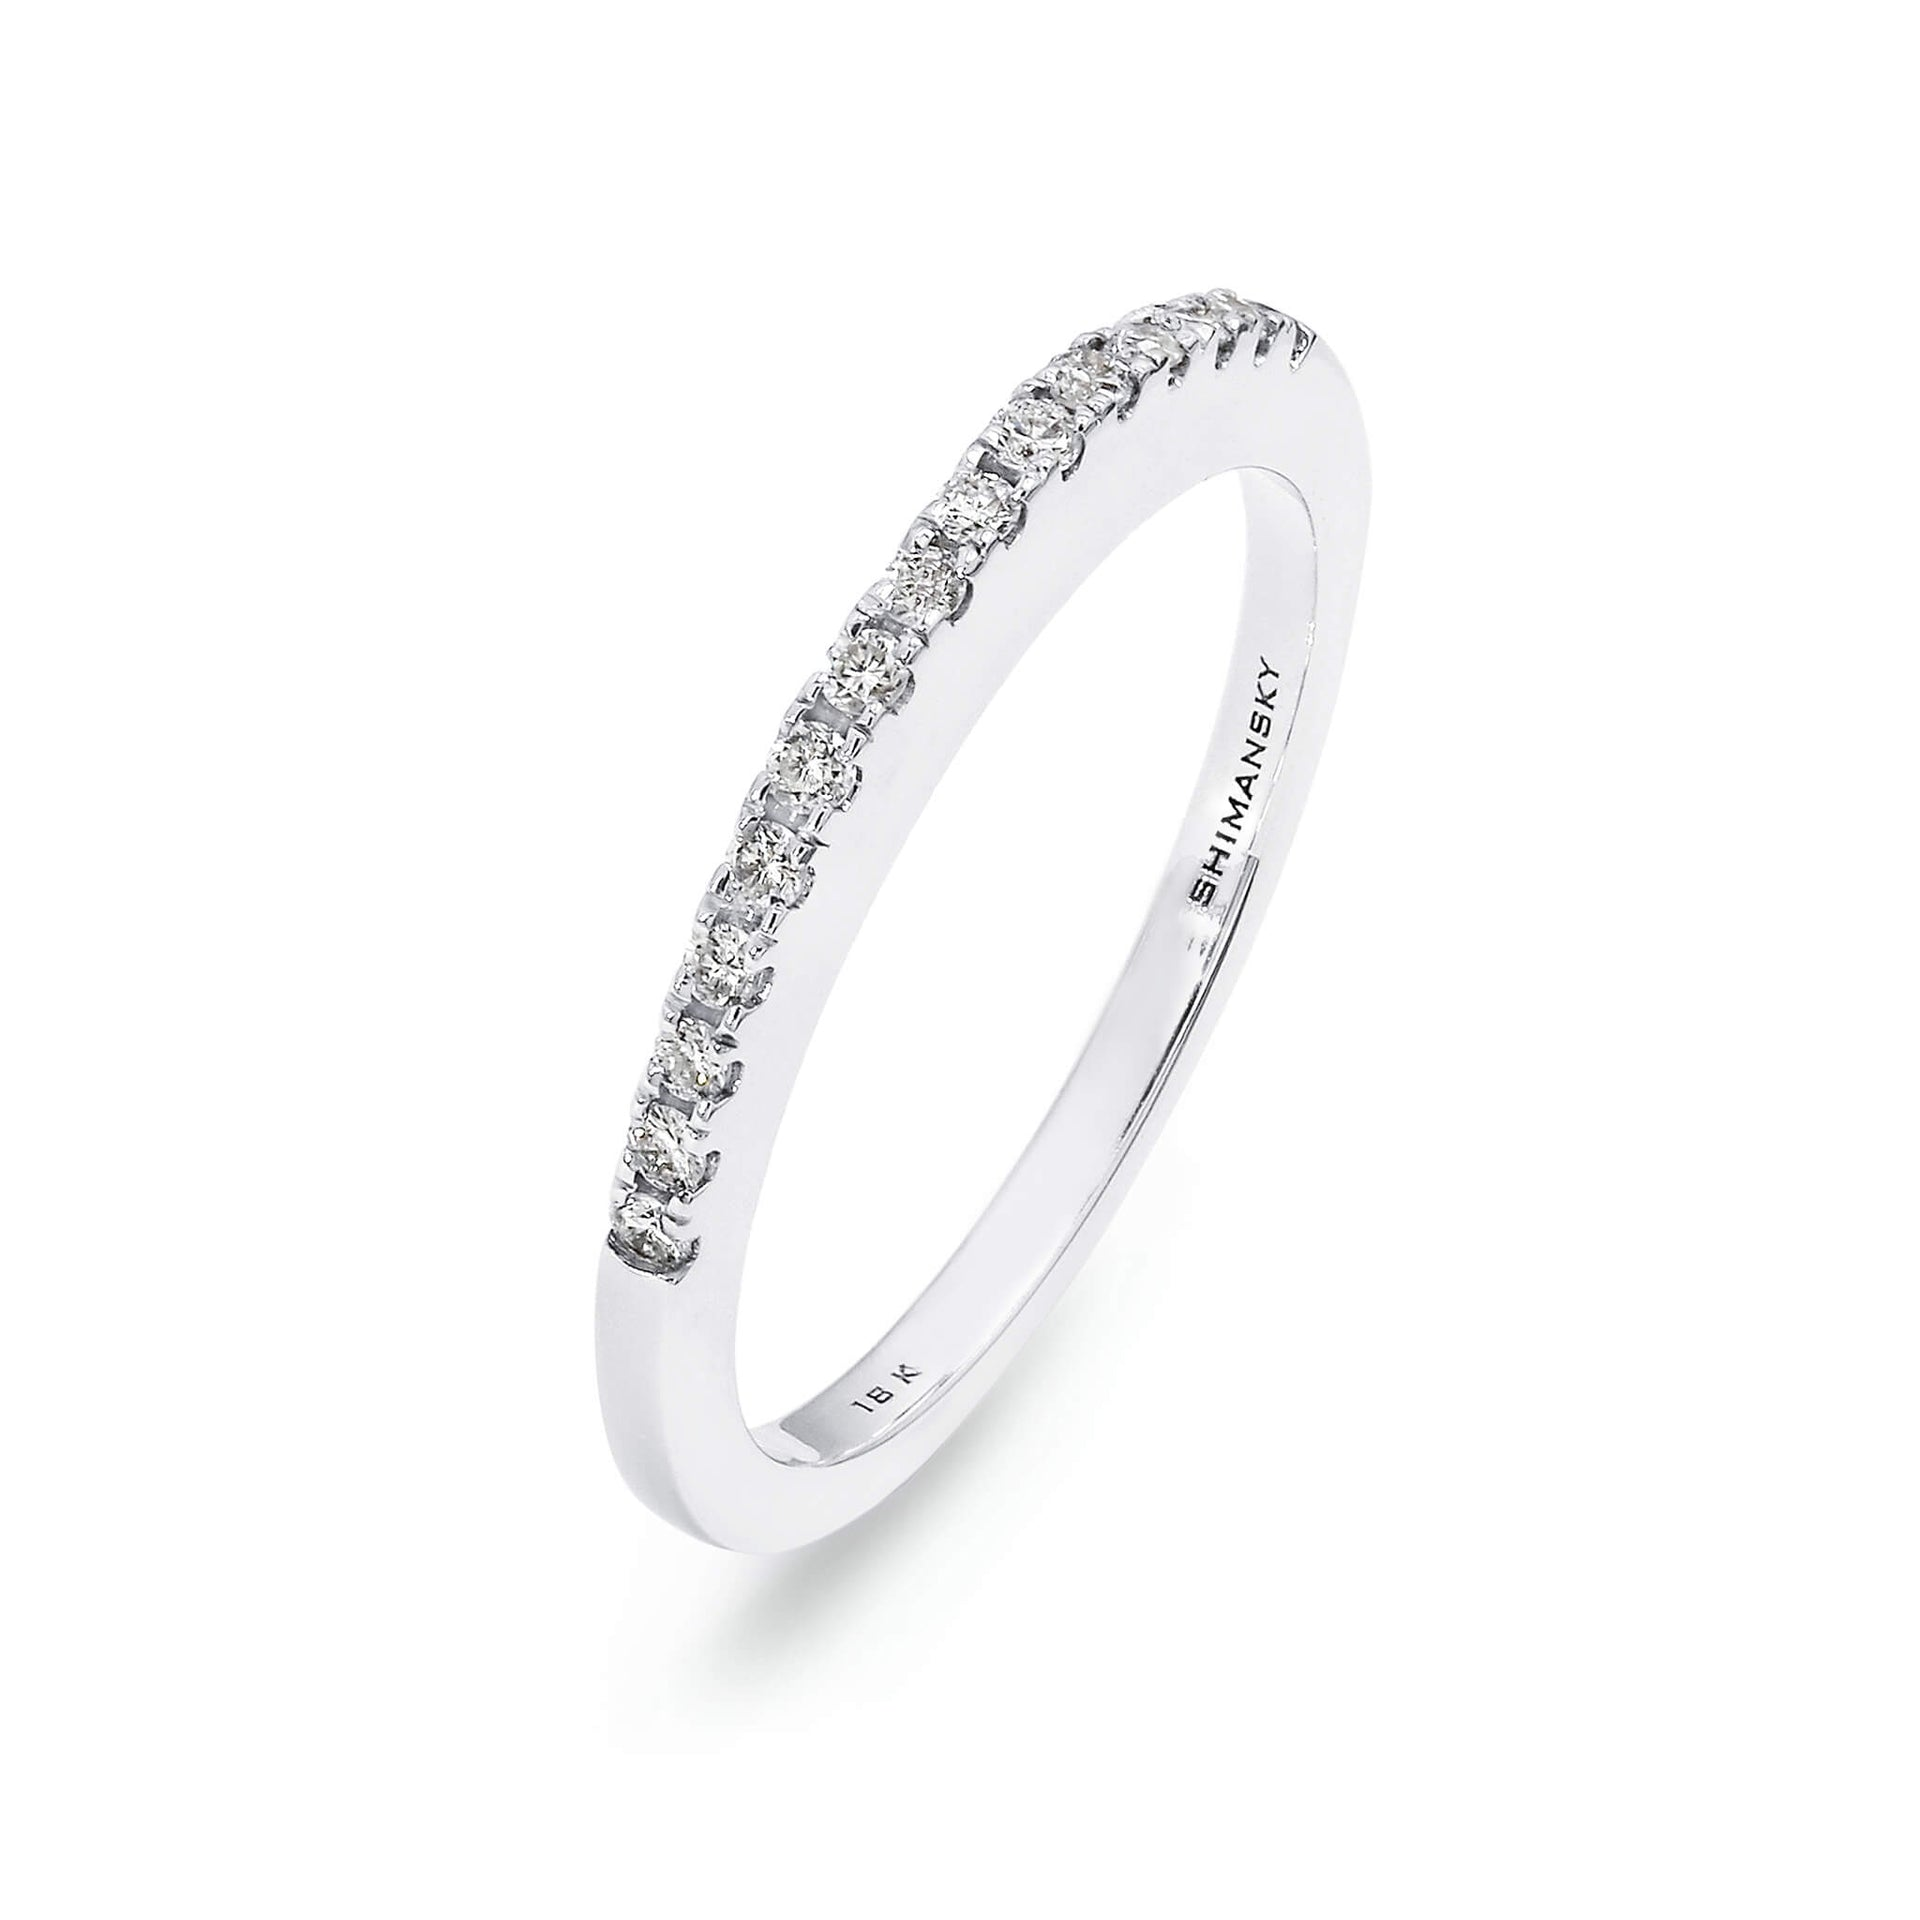 Round Brilliant Cut Millennium Diamond Wedding Band in 18K White Gold 3D View